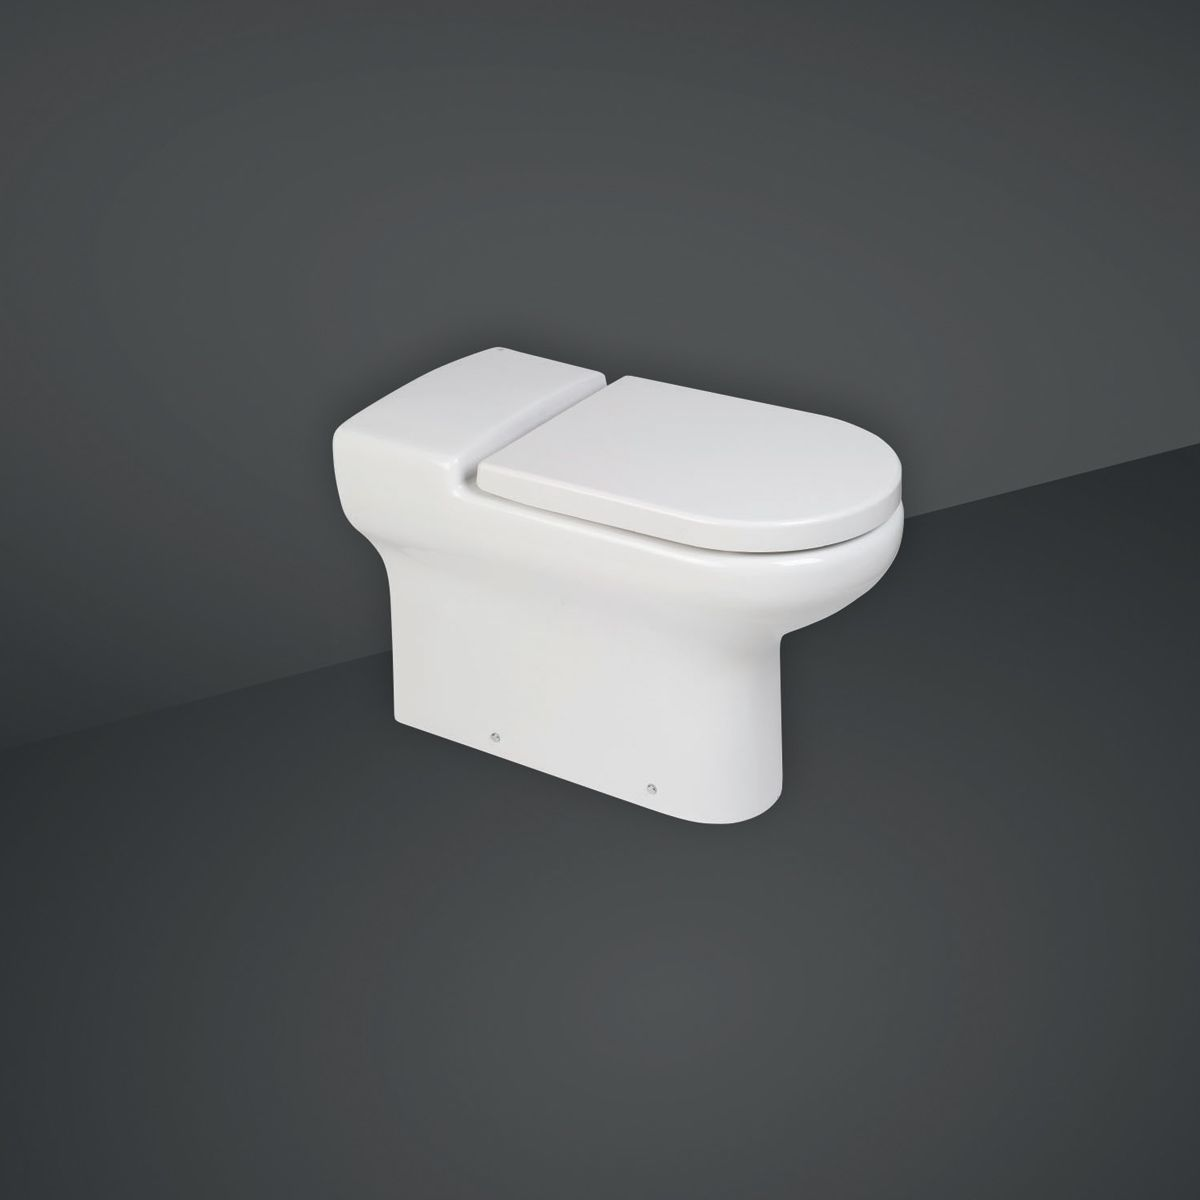 RAK Compact Special Needs Wall Hung Toilet 700mm